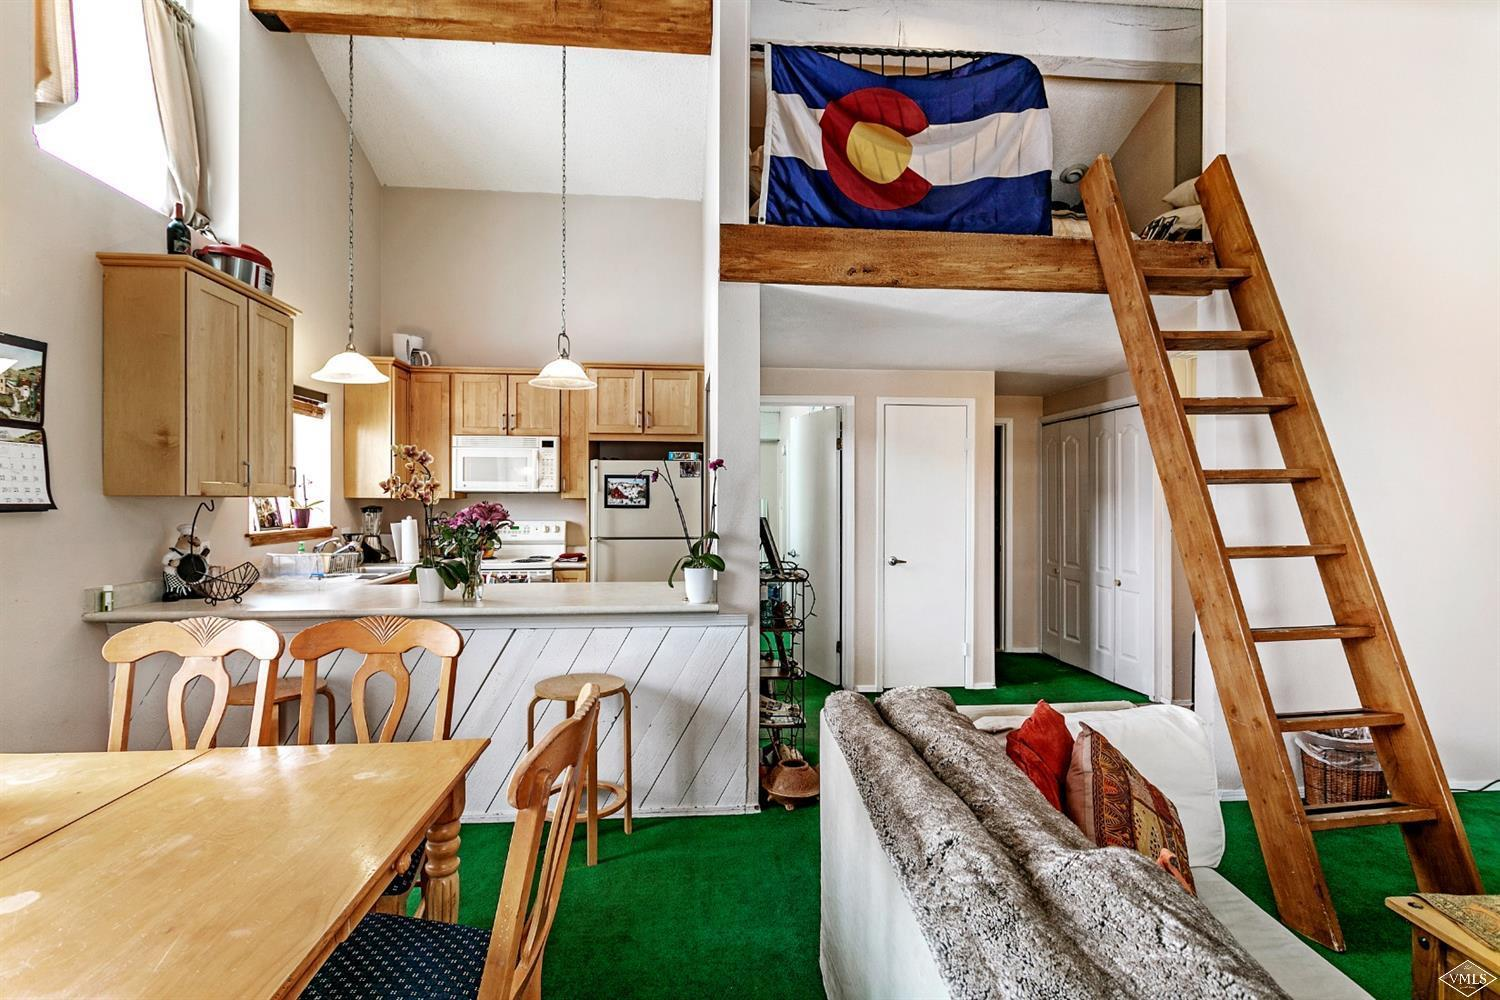 This top floor residence in Beaver Creek West features vaulted ceilings and incredible views of Beaver Creek mountain as well as Game Creek Bowl in Vail. In addition to the spacious 1-bedroom, this unit offers an additional loft space with amenities that include a swimming pool, kiddie pool, two hot tubs, shuttle service and onsite management. Being one of only two 1-bedroom residences in the complex, the rental history is excellent.